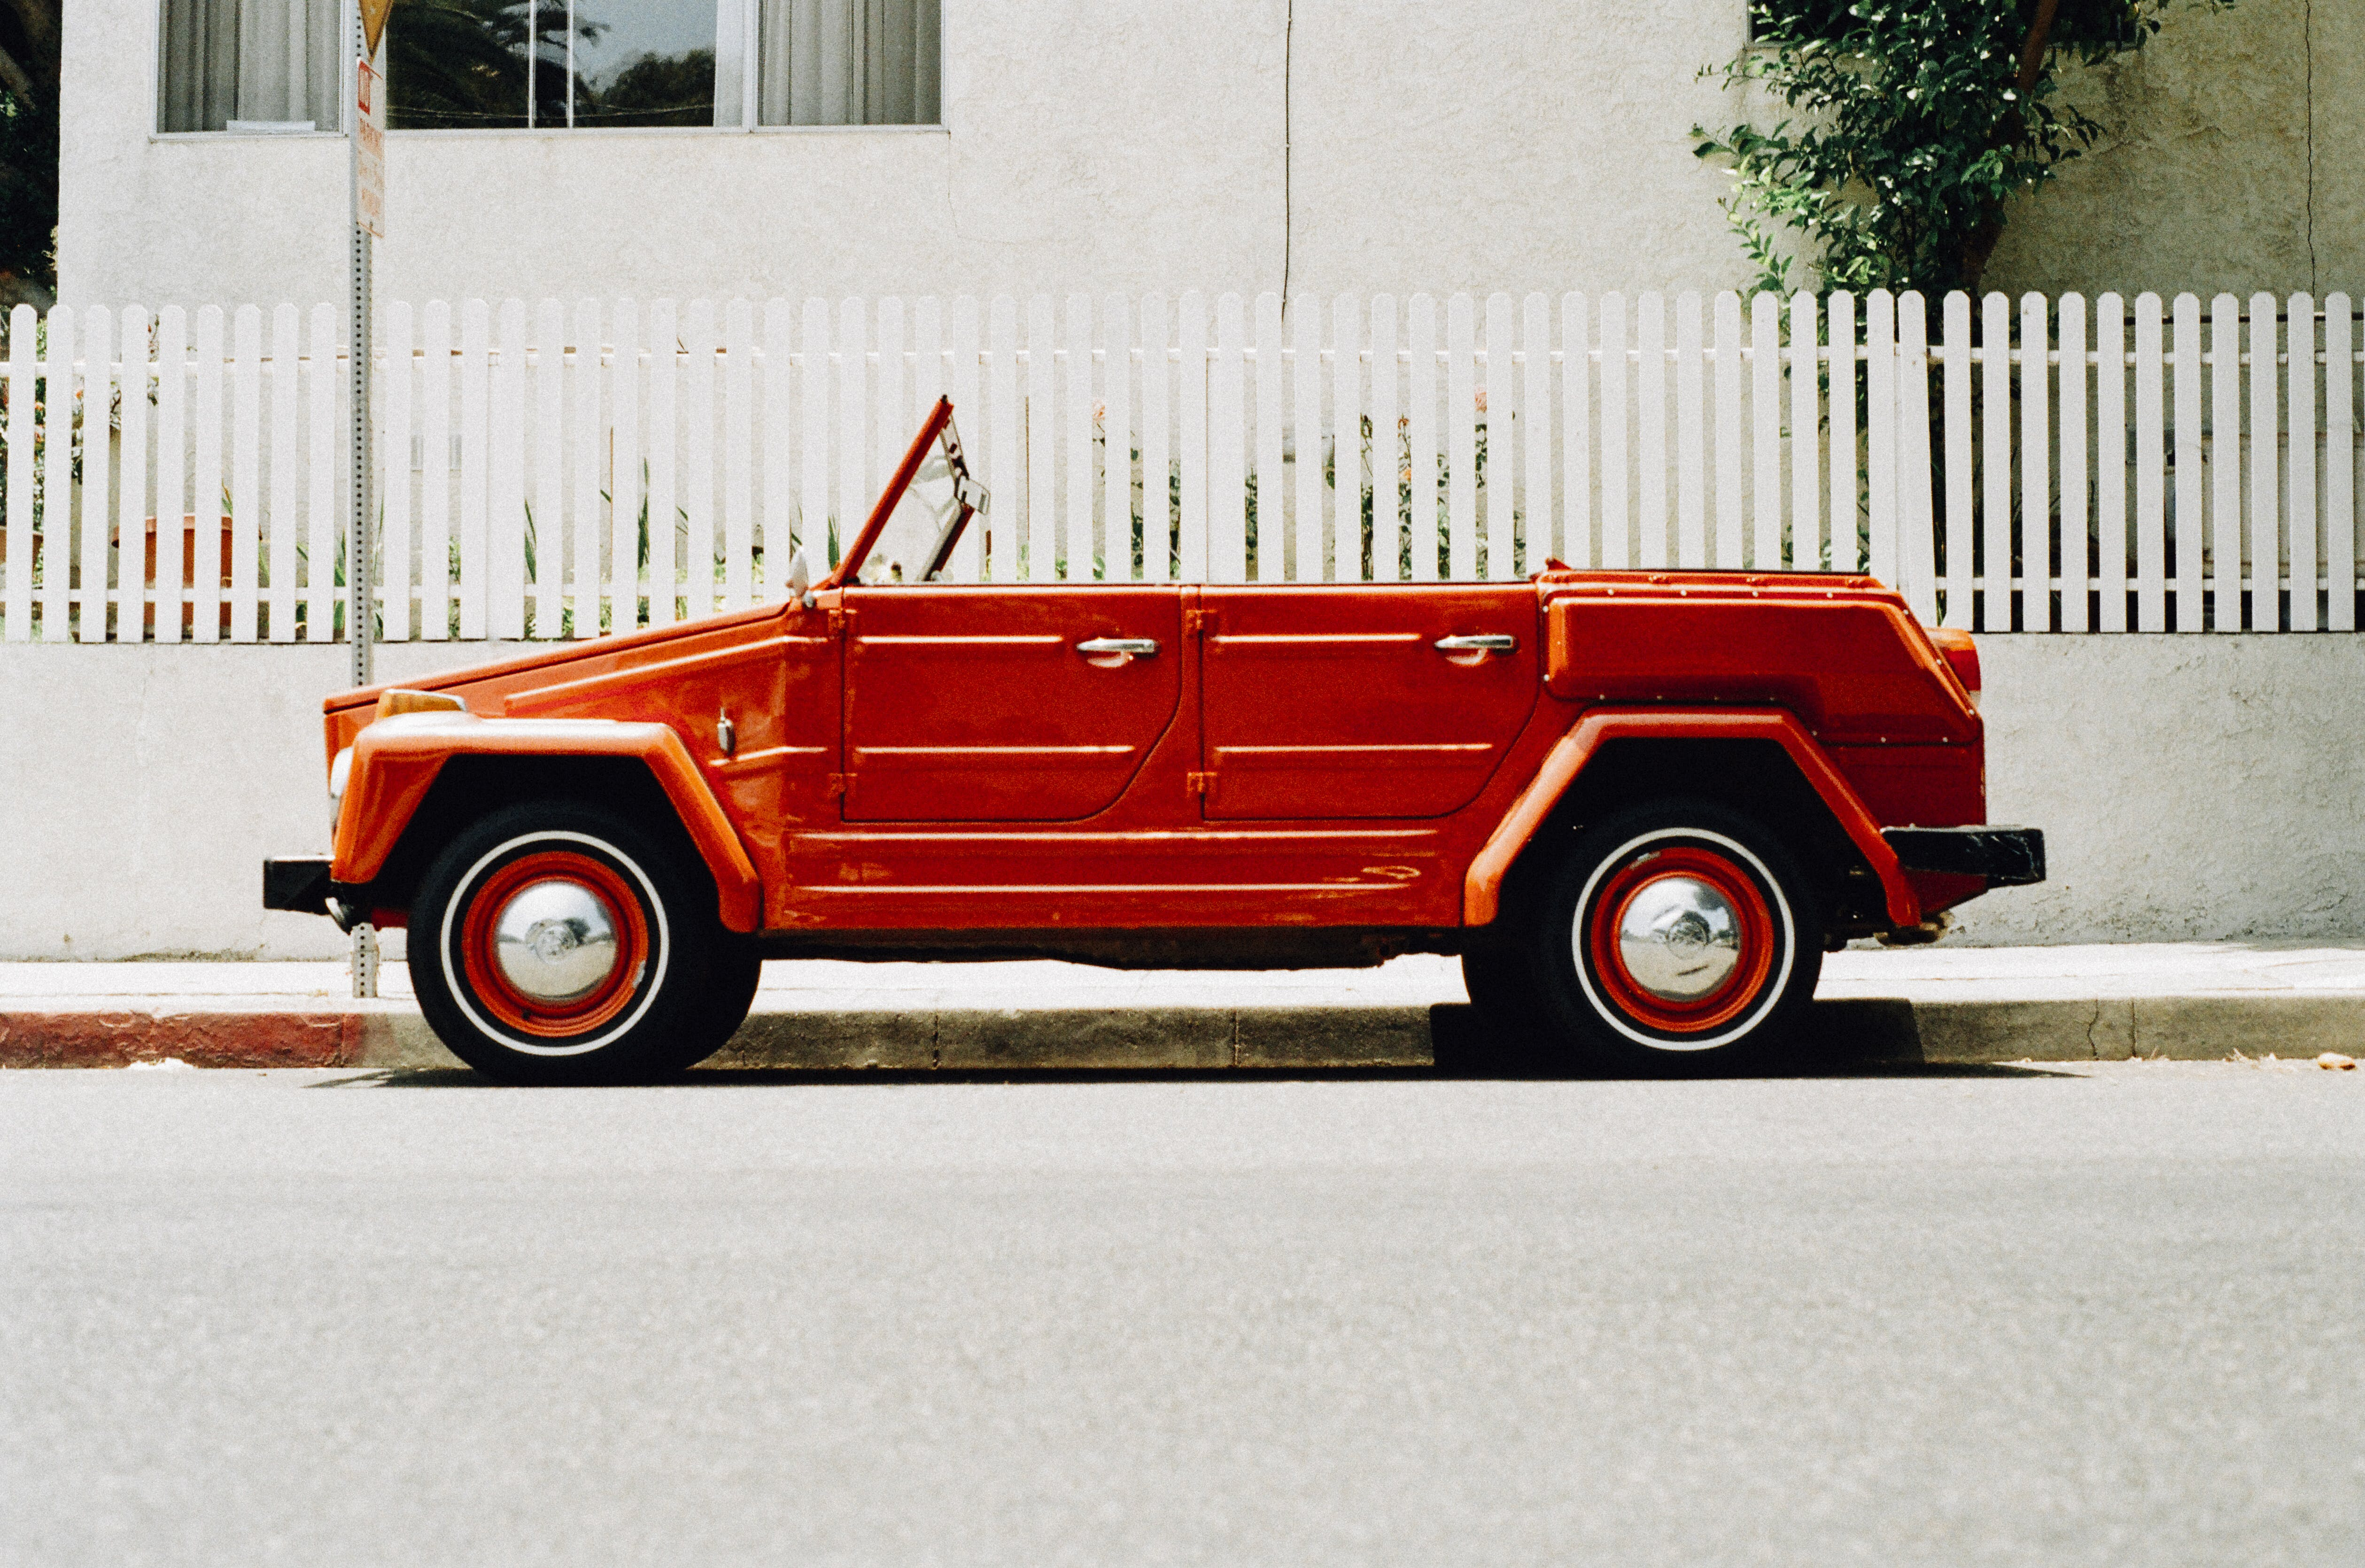 Vintage Red Coupe Parked Beside Gutter